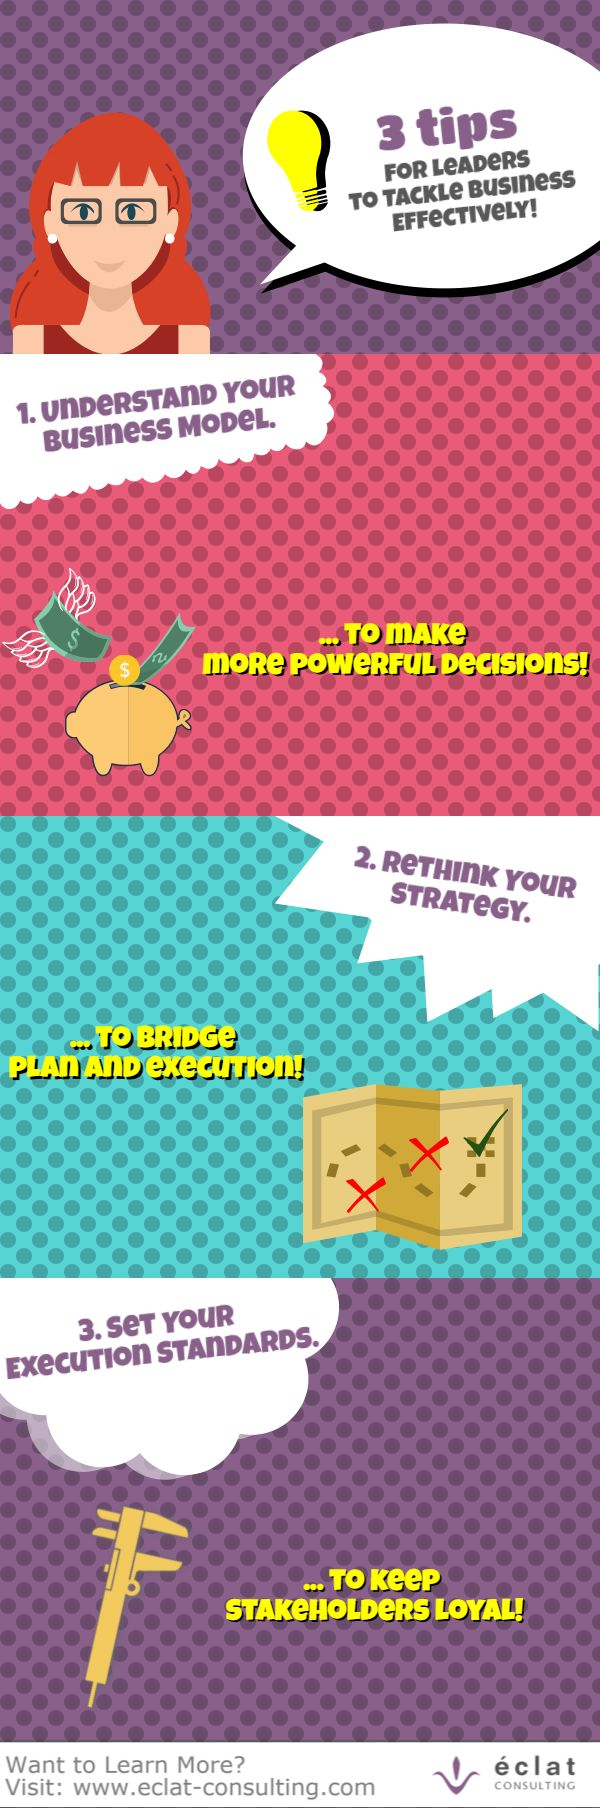 These 3 tips will help you to tackle your business effectively!